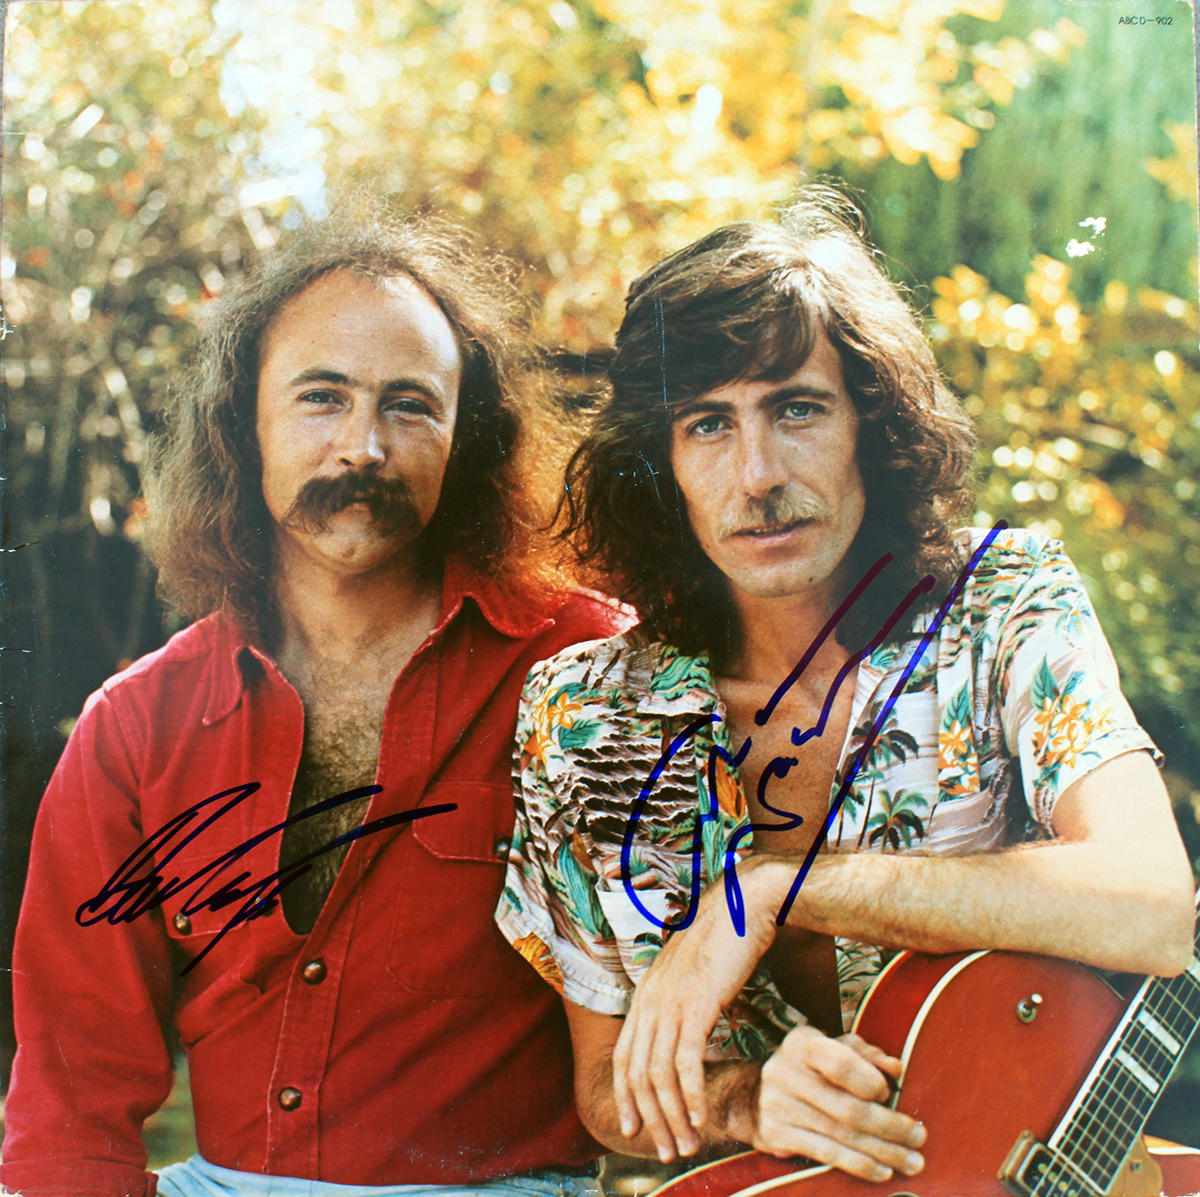 Photo - David Crosby and Graham Nash